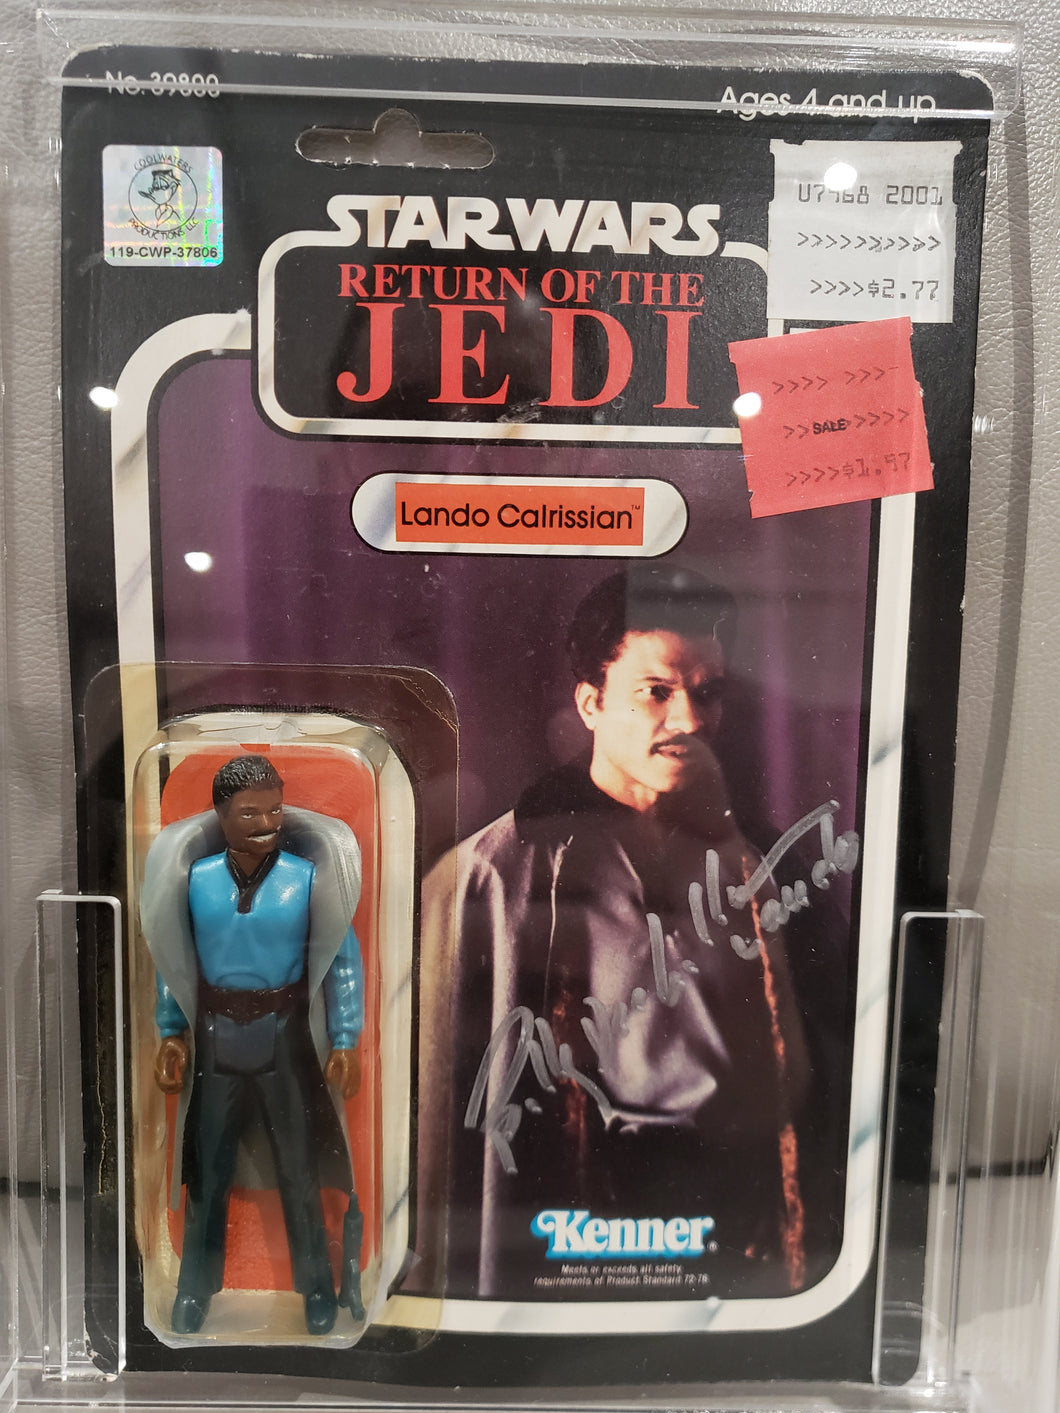 BILLY DEE WILLIAMS AUTOGRAPHED VINTAGE 1983 Star Wars ROTJ Lando Calrissian MOC (SMILING VARIANT) 65 A